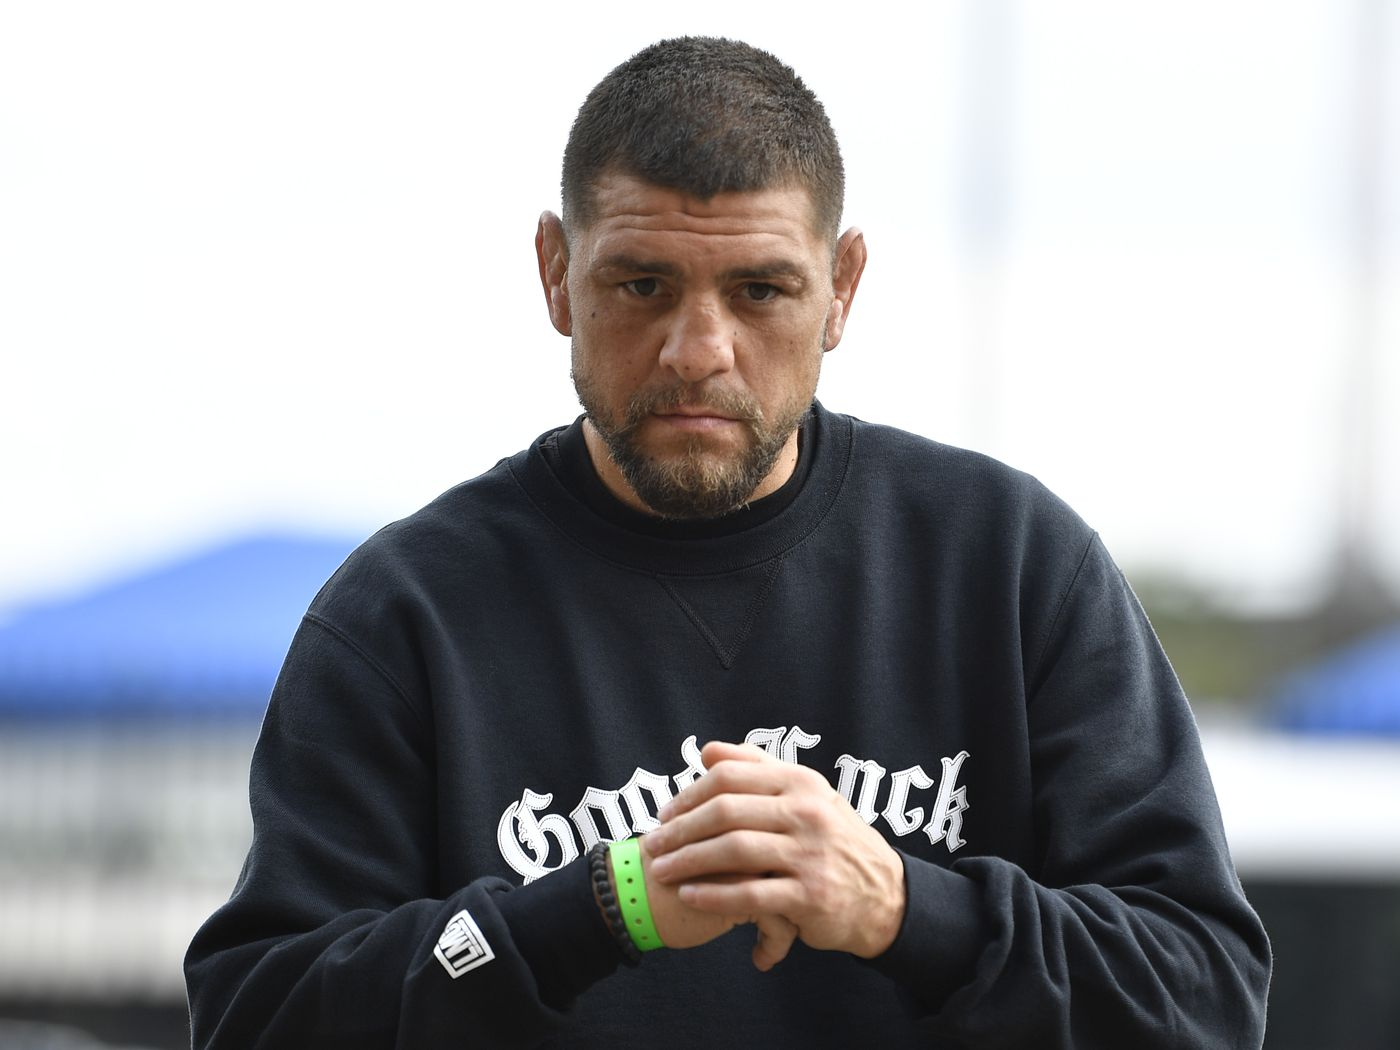 Midnight Mania! 'Everybody should go to jail' if Nick Diaz vs Khamzat Chimaev is booked - MMAmania.com